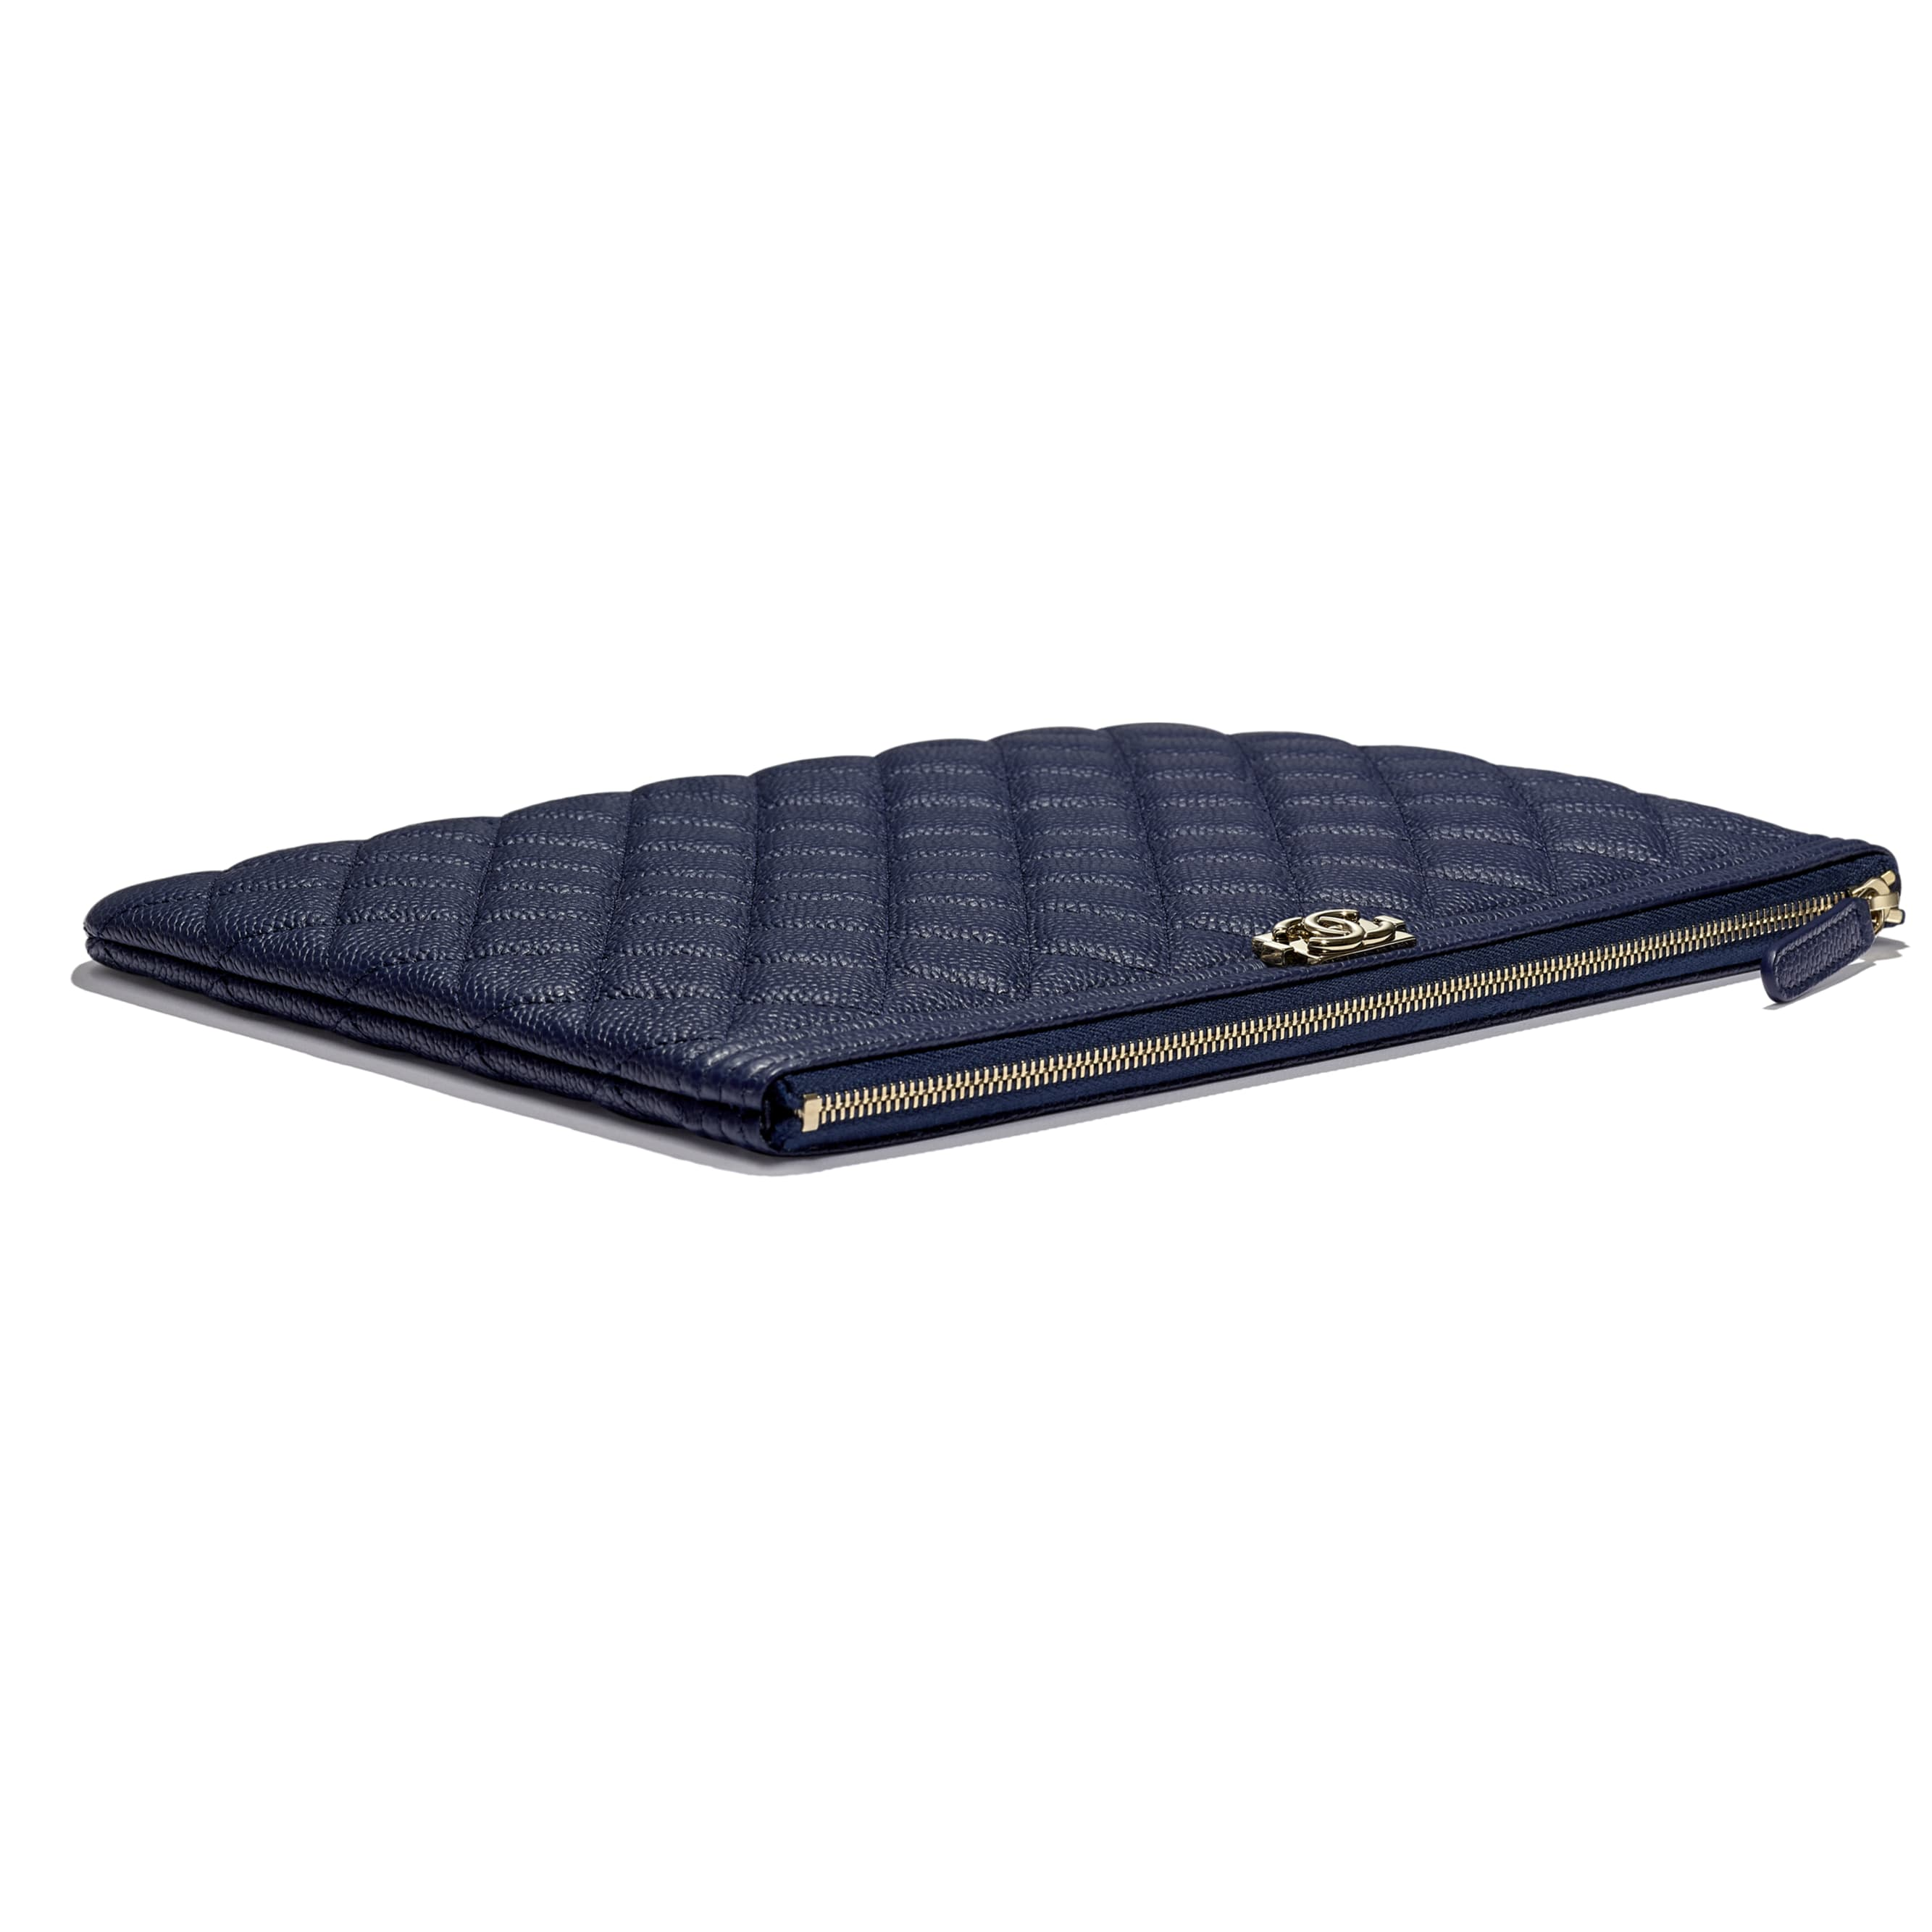 BOY CHANEL Pouch - Navy Blue - Grained Calfskin & Gold-Tone Metal - Extra view - see standard sized version